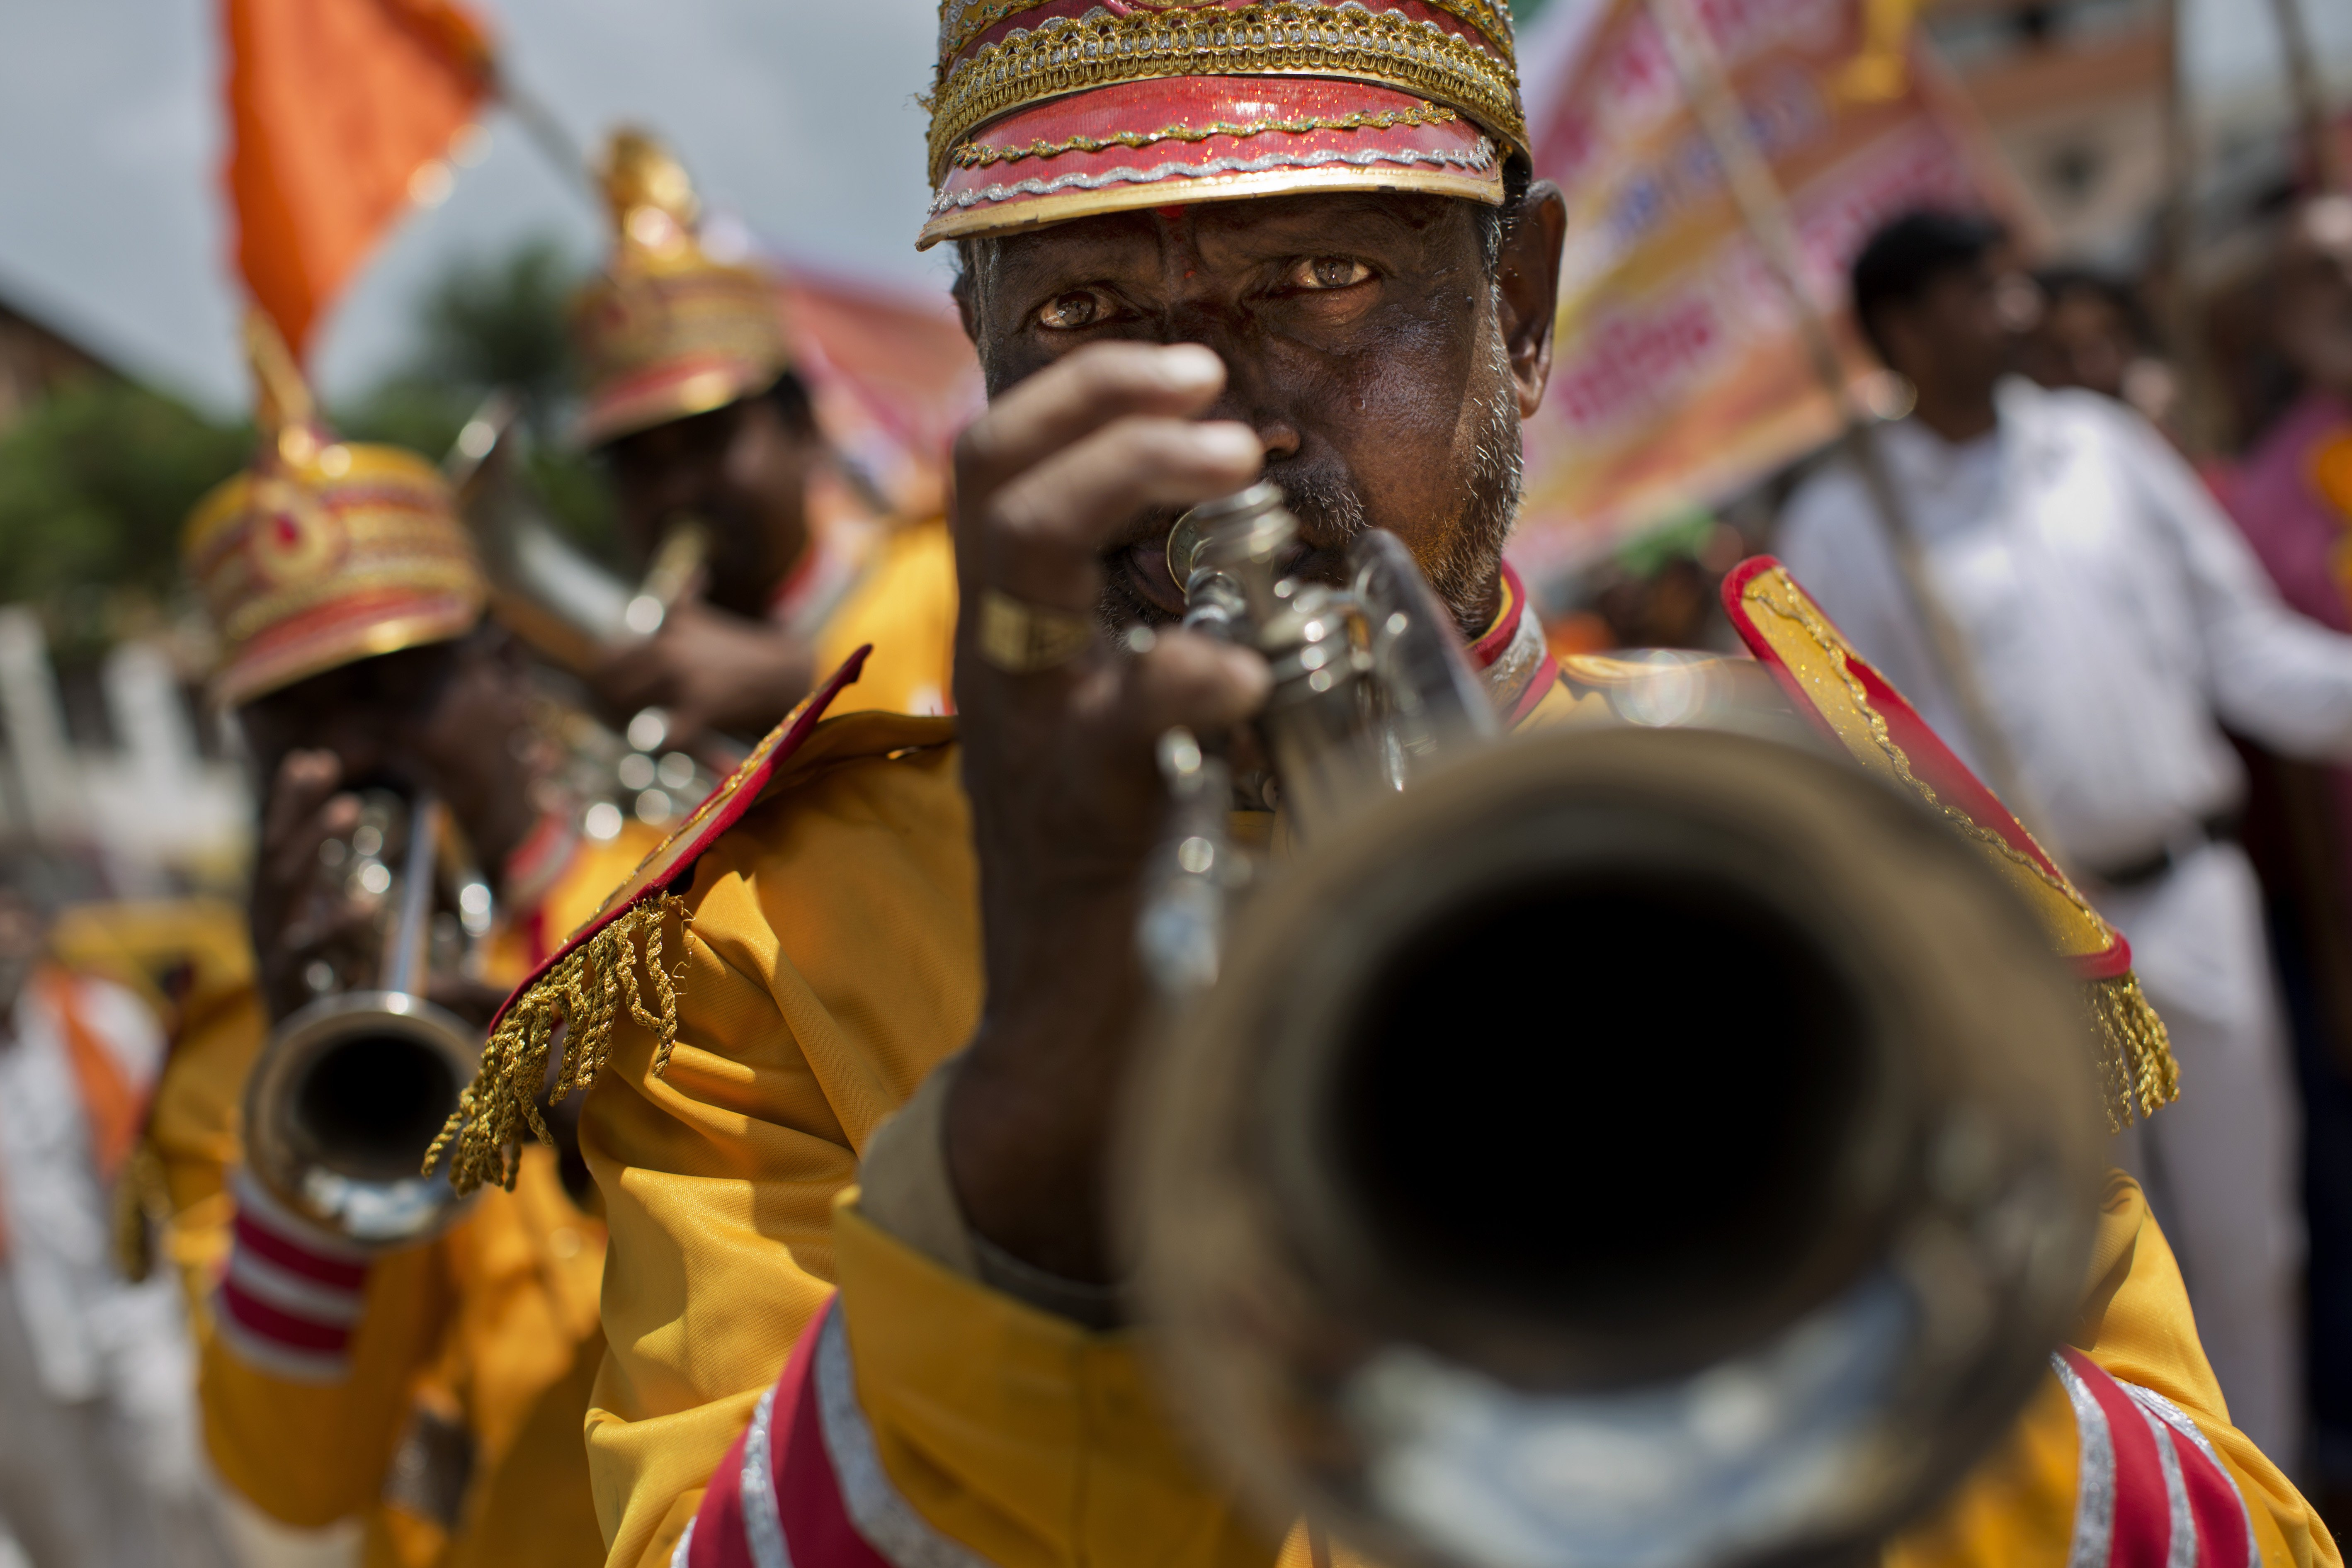 Members of an Indian brass band perform in a procession during Kumbh Mela, or Pitcher Festival, at Trimbakeshwar, India, on Aug. 27, 2015.